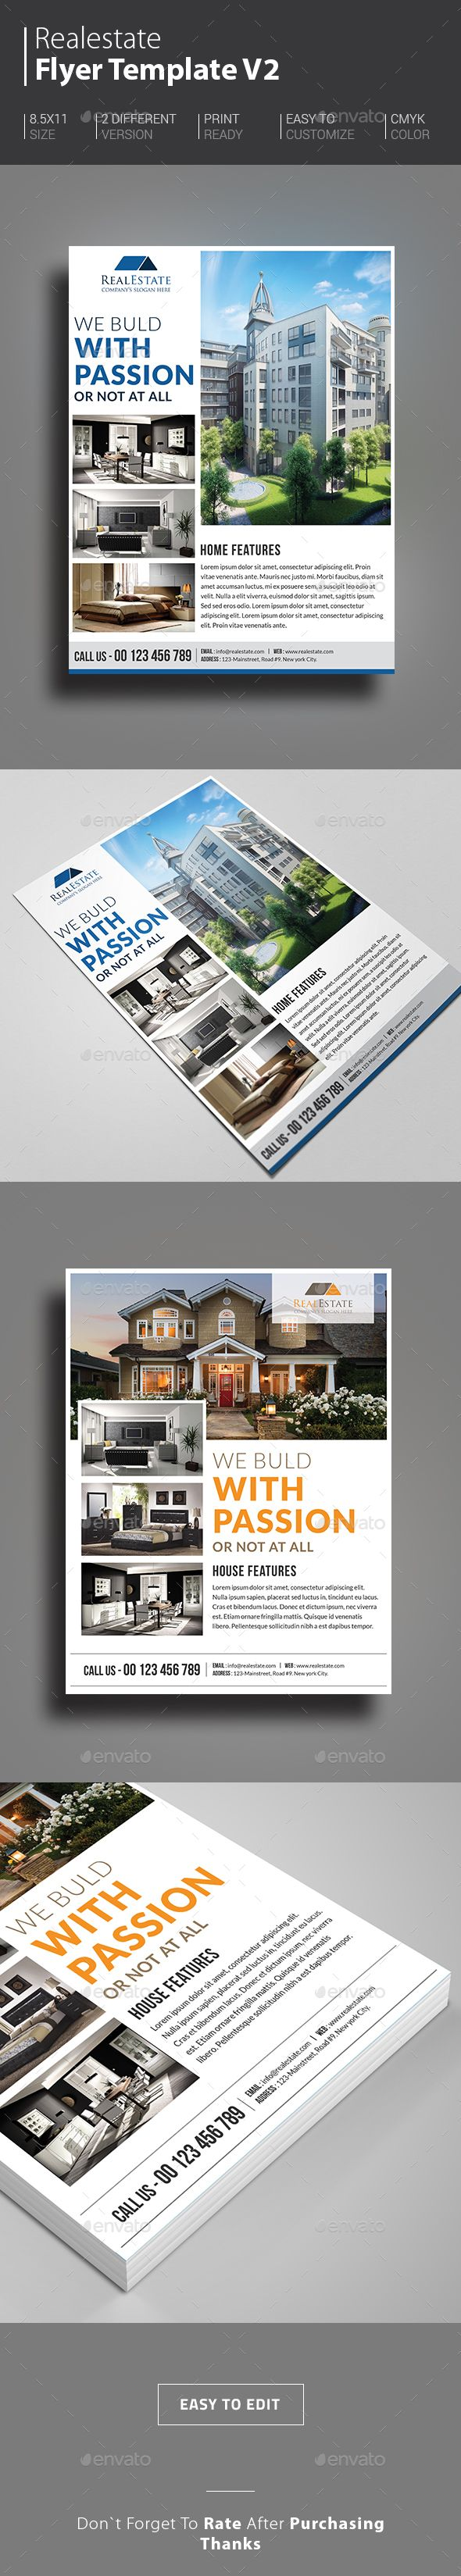 Real Estate Flyer | Real estate flyers, Real estate and Marketing flyers